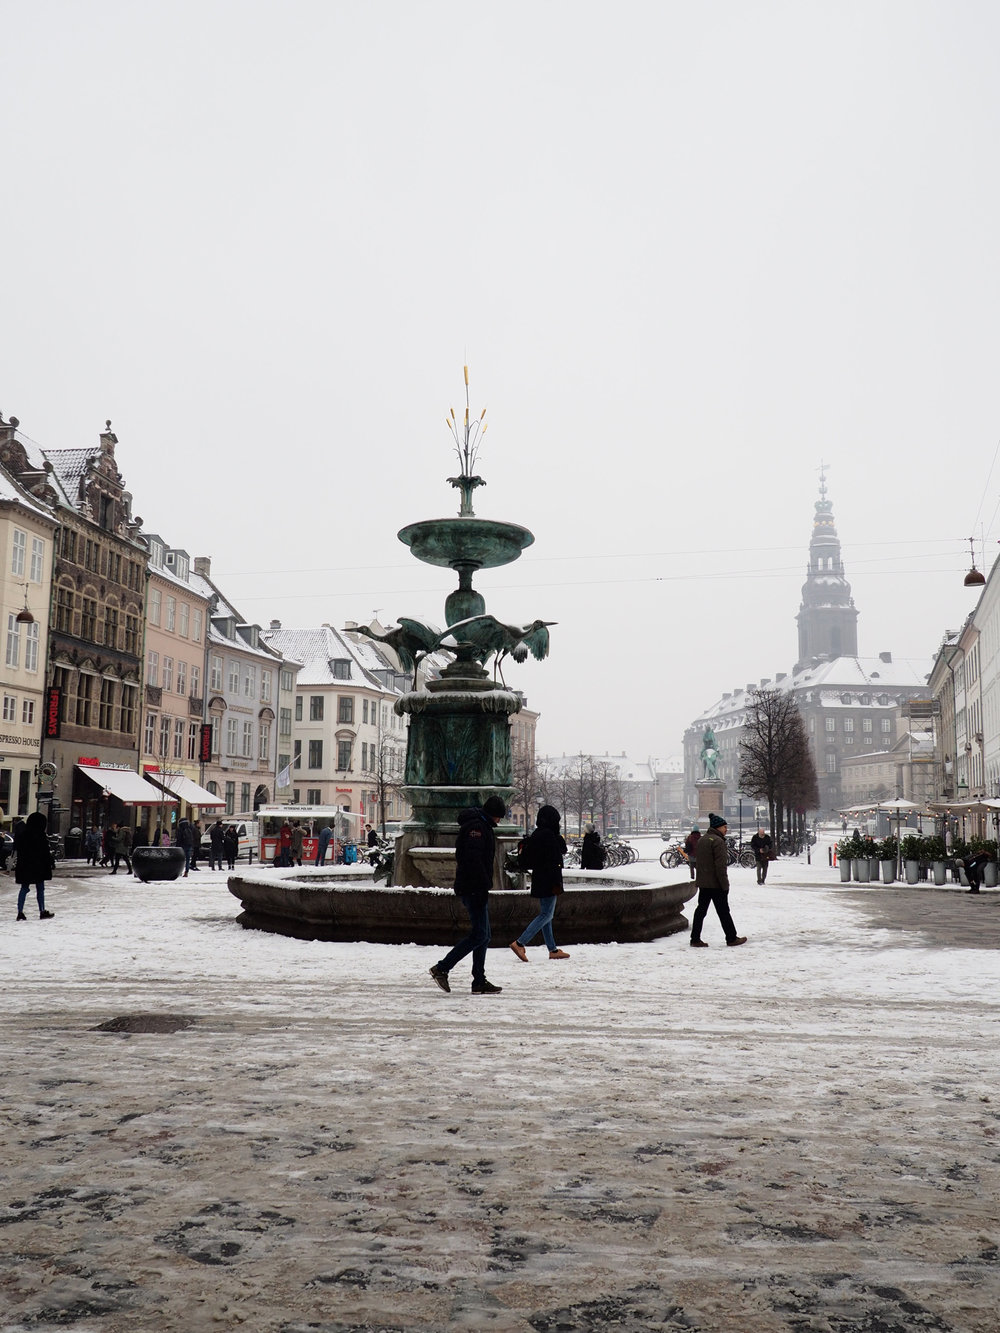 It snowed in Copenhagen during my stay